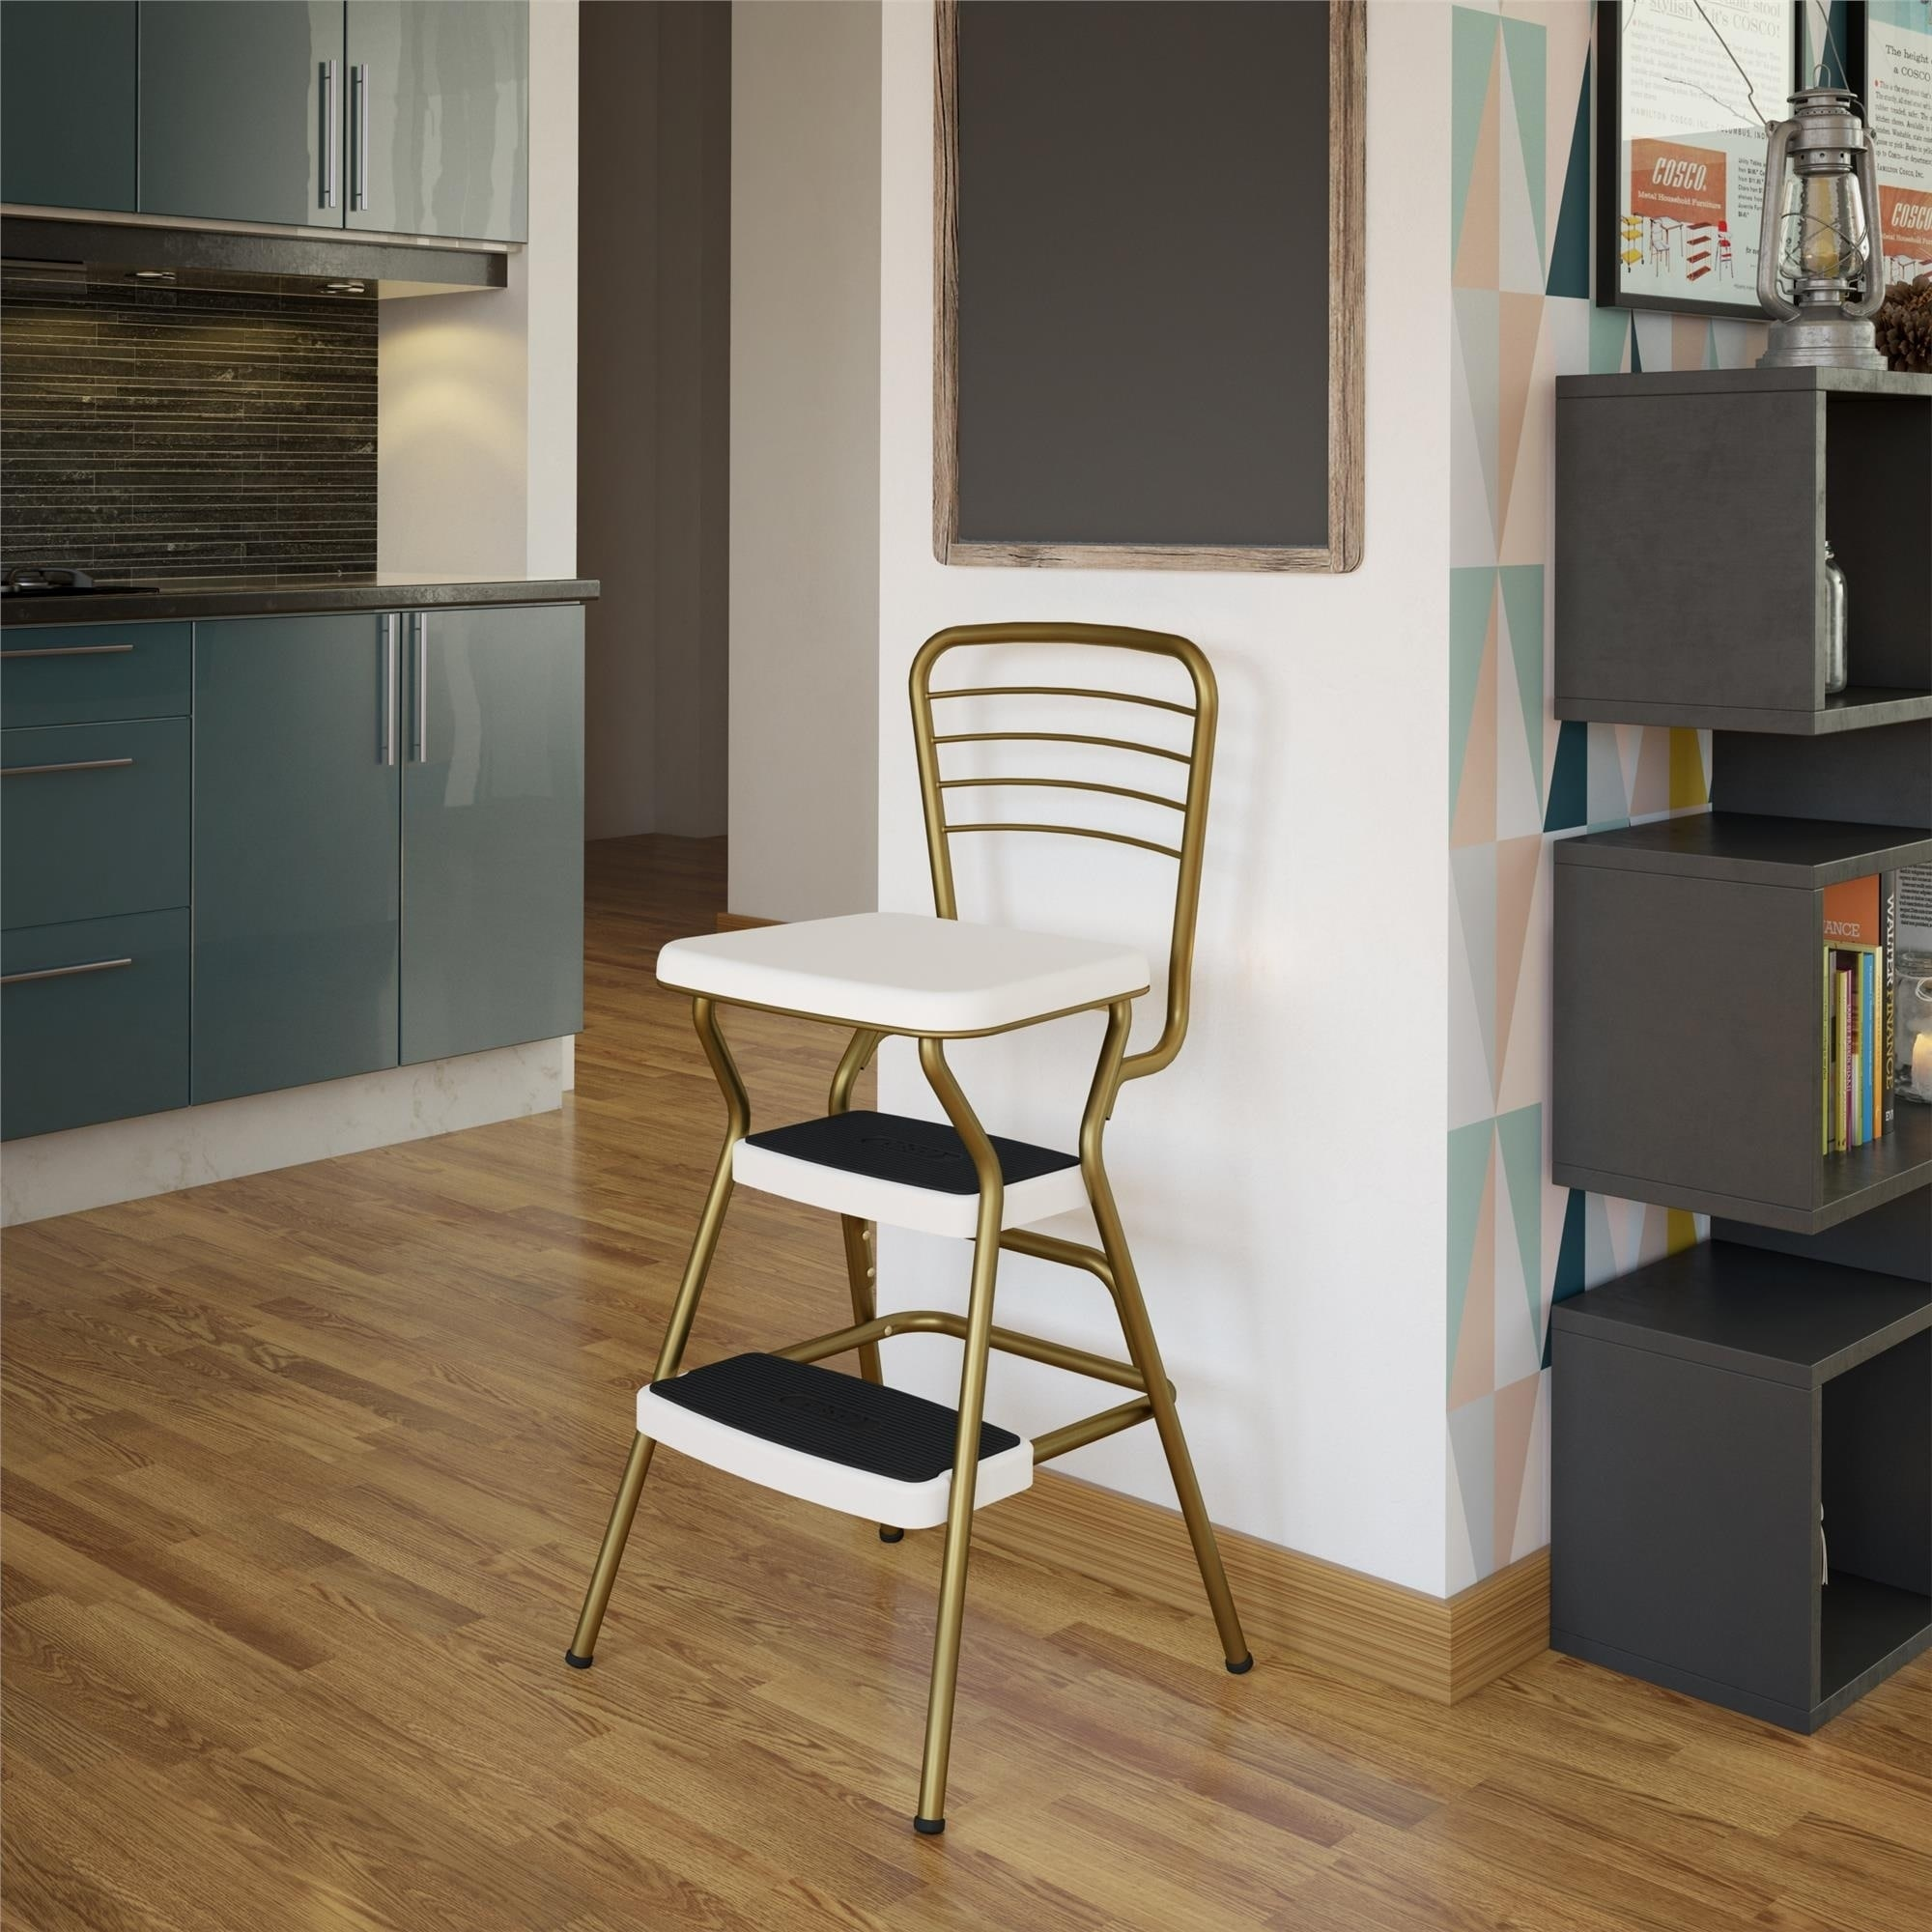 Remarkable Cosco Stylaire Retro Chair Step Stool With Flip Up Seat N A Machost Co Dining Chair Design Ideas Machostcouk